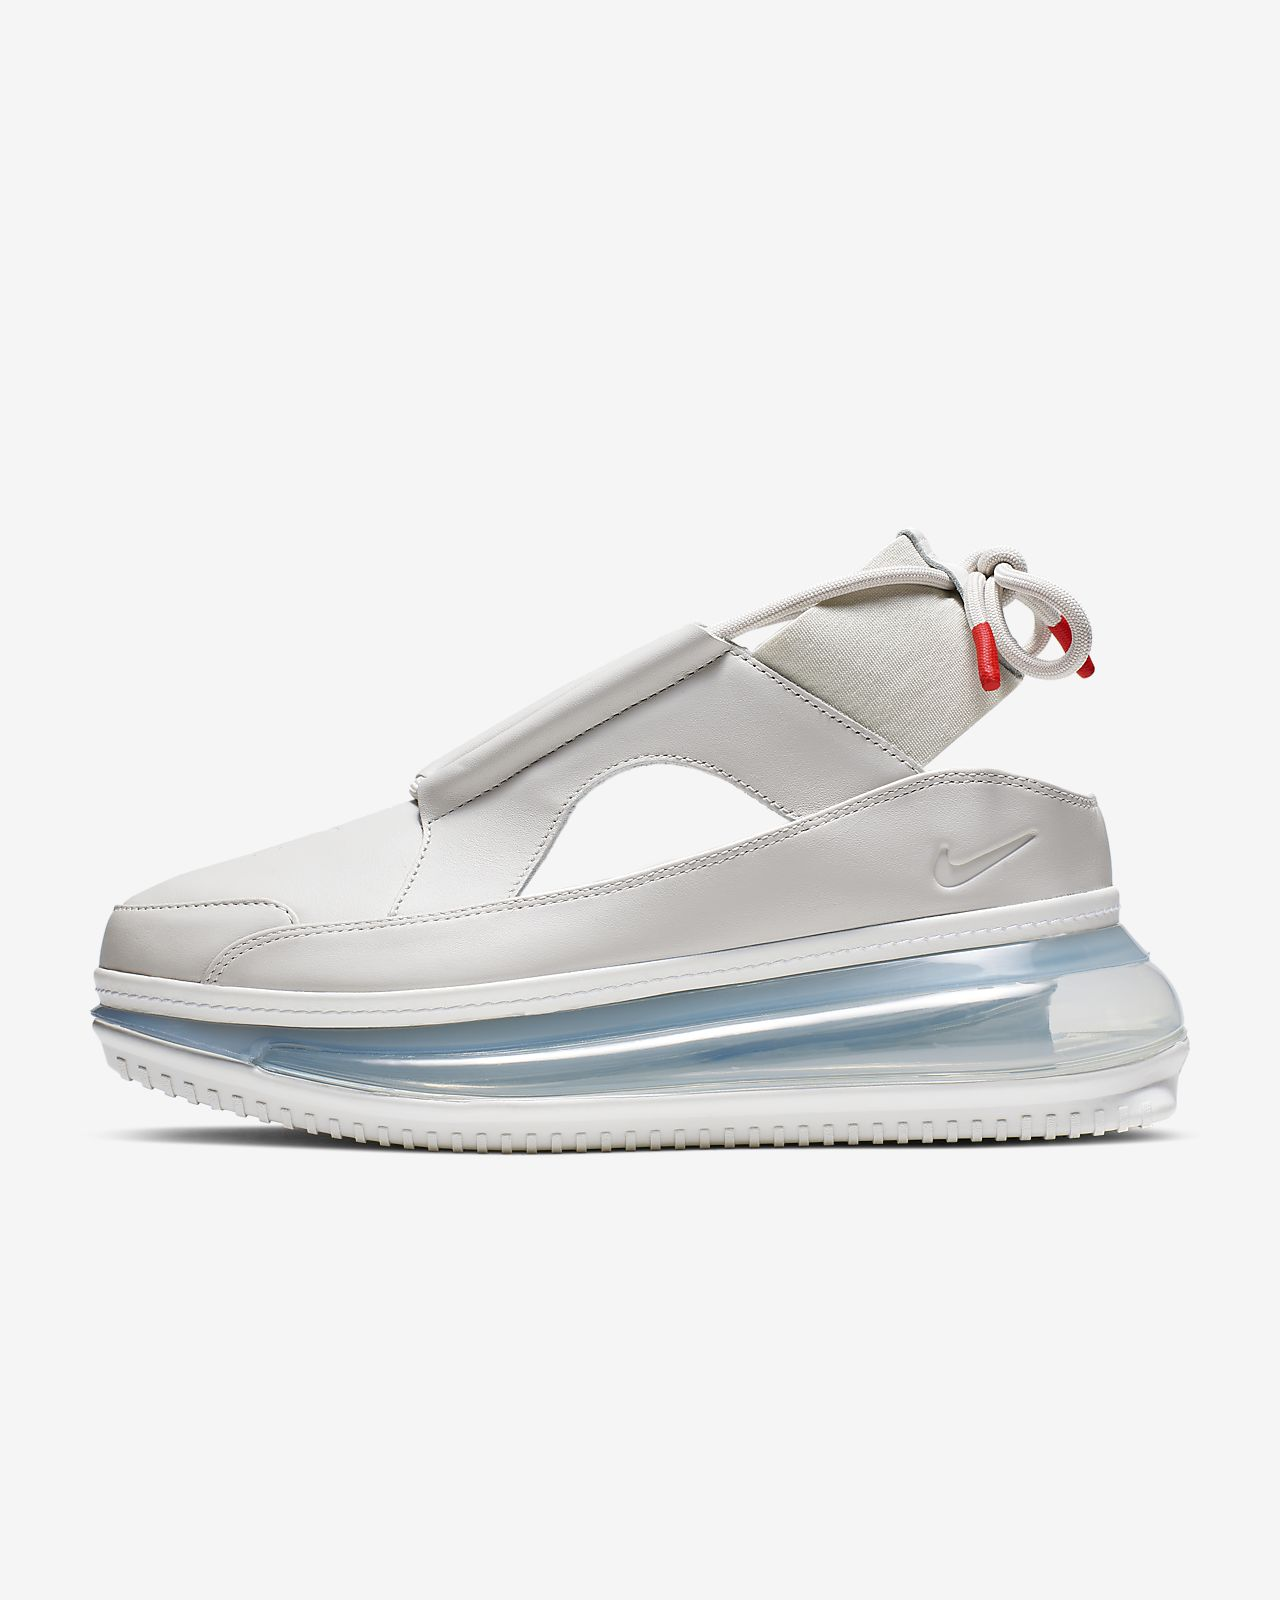 Nike Air Max 720 Ff Shop Clothing Shoes Online